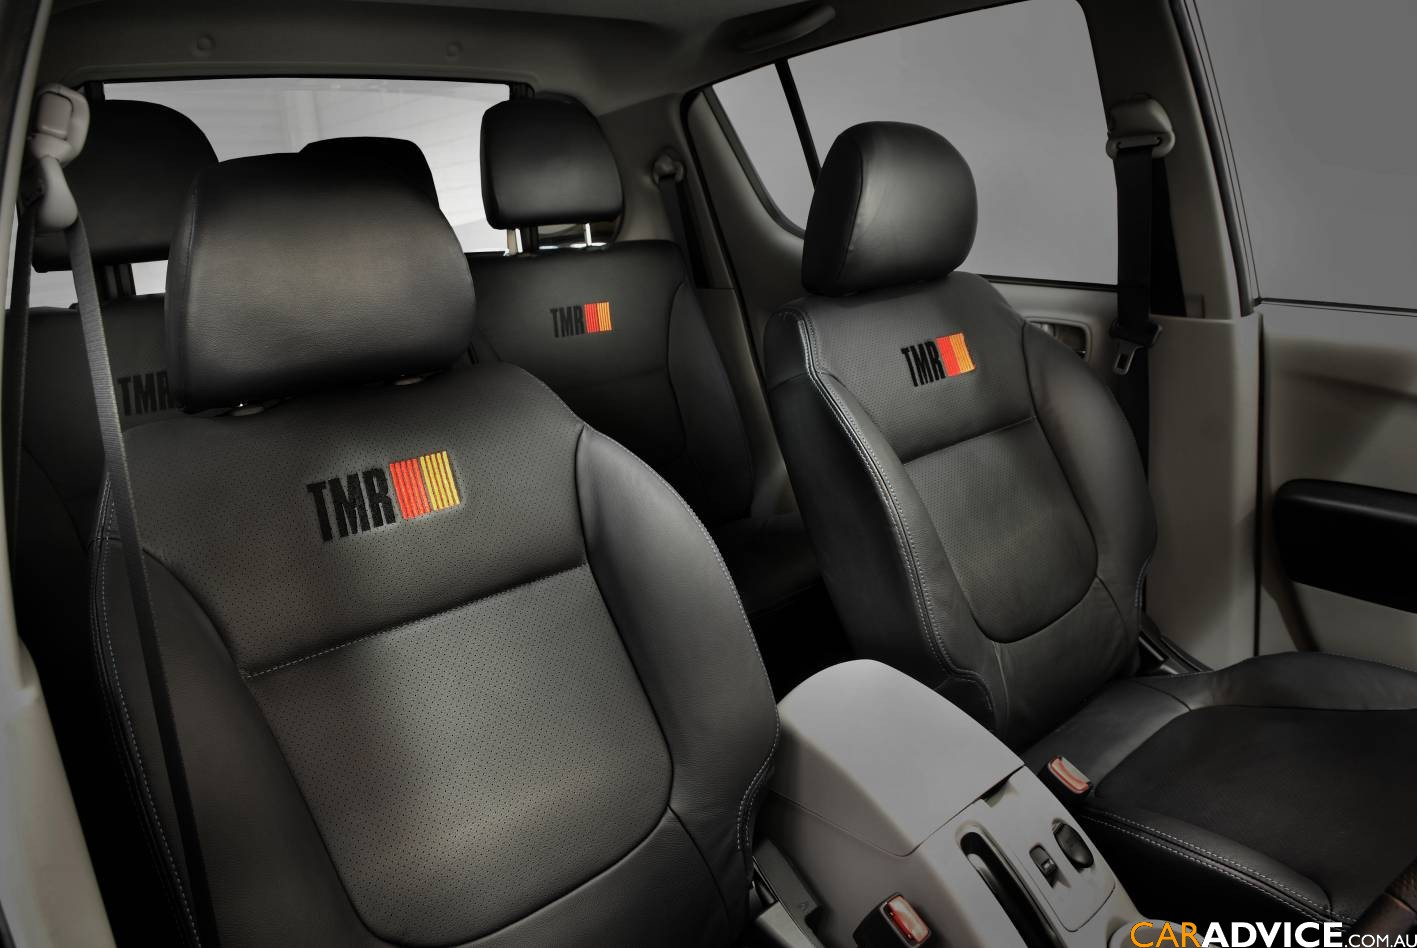 tmrtriton4.jpg. Inside, the car gets leather seats, TMR stitching and logos,